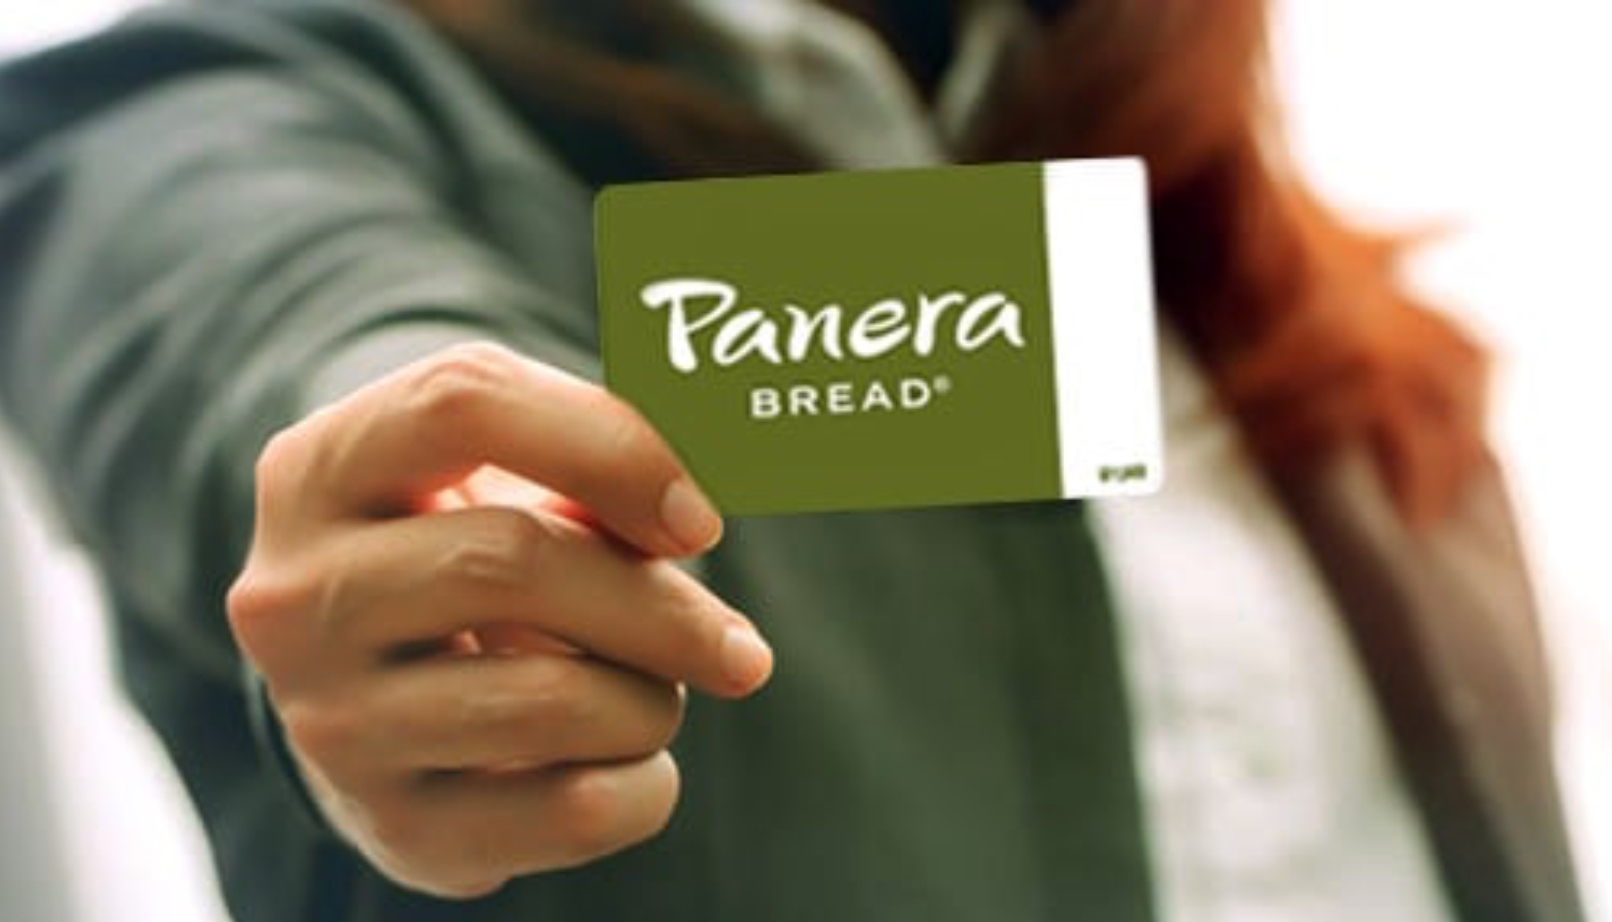 Enter for your chance to win a $20 Panera Bread gift card when you enter the Camp Panera Sweepstakes